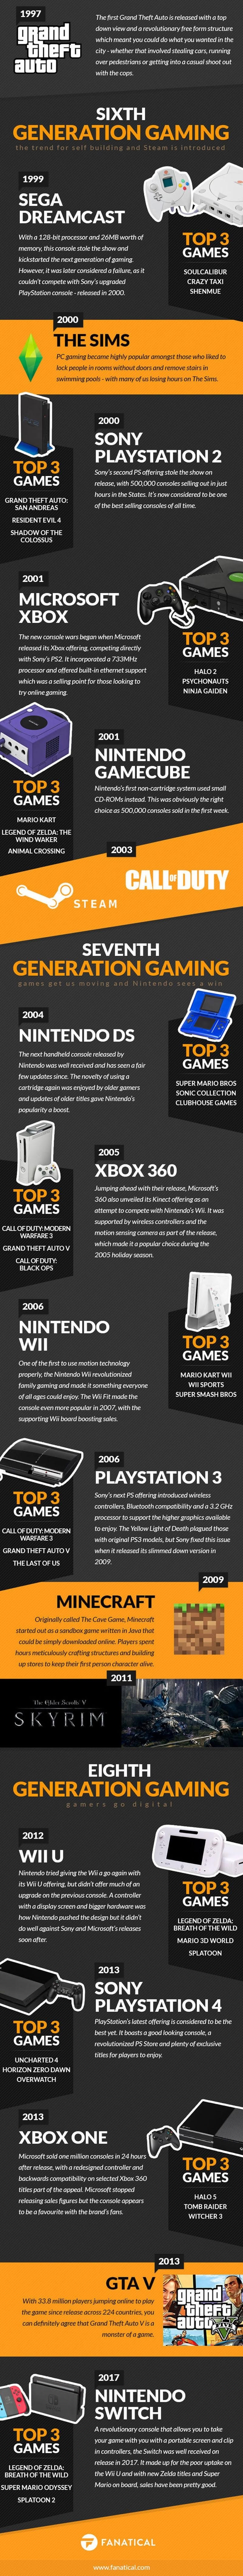 The History Of Games Consoles: 1972-2018 #infographic